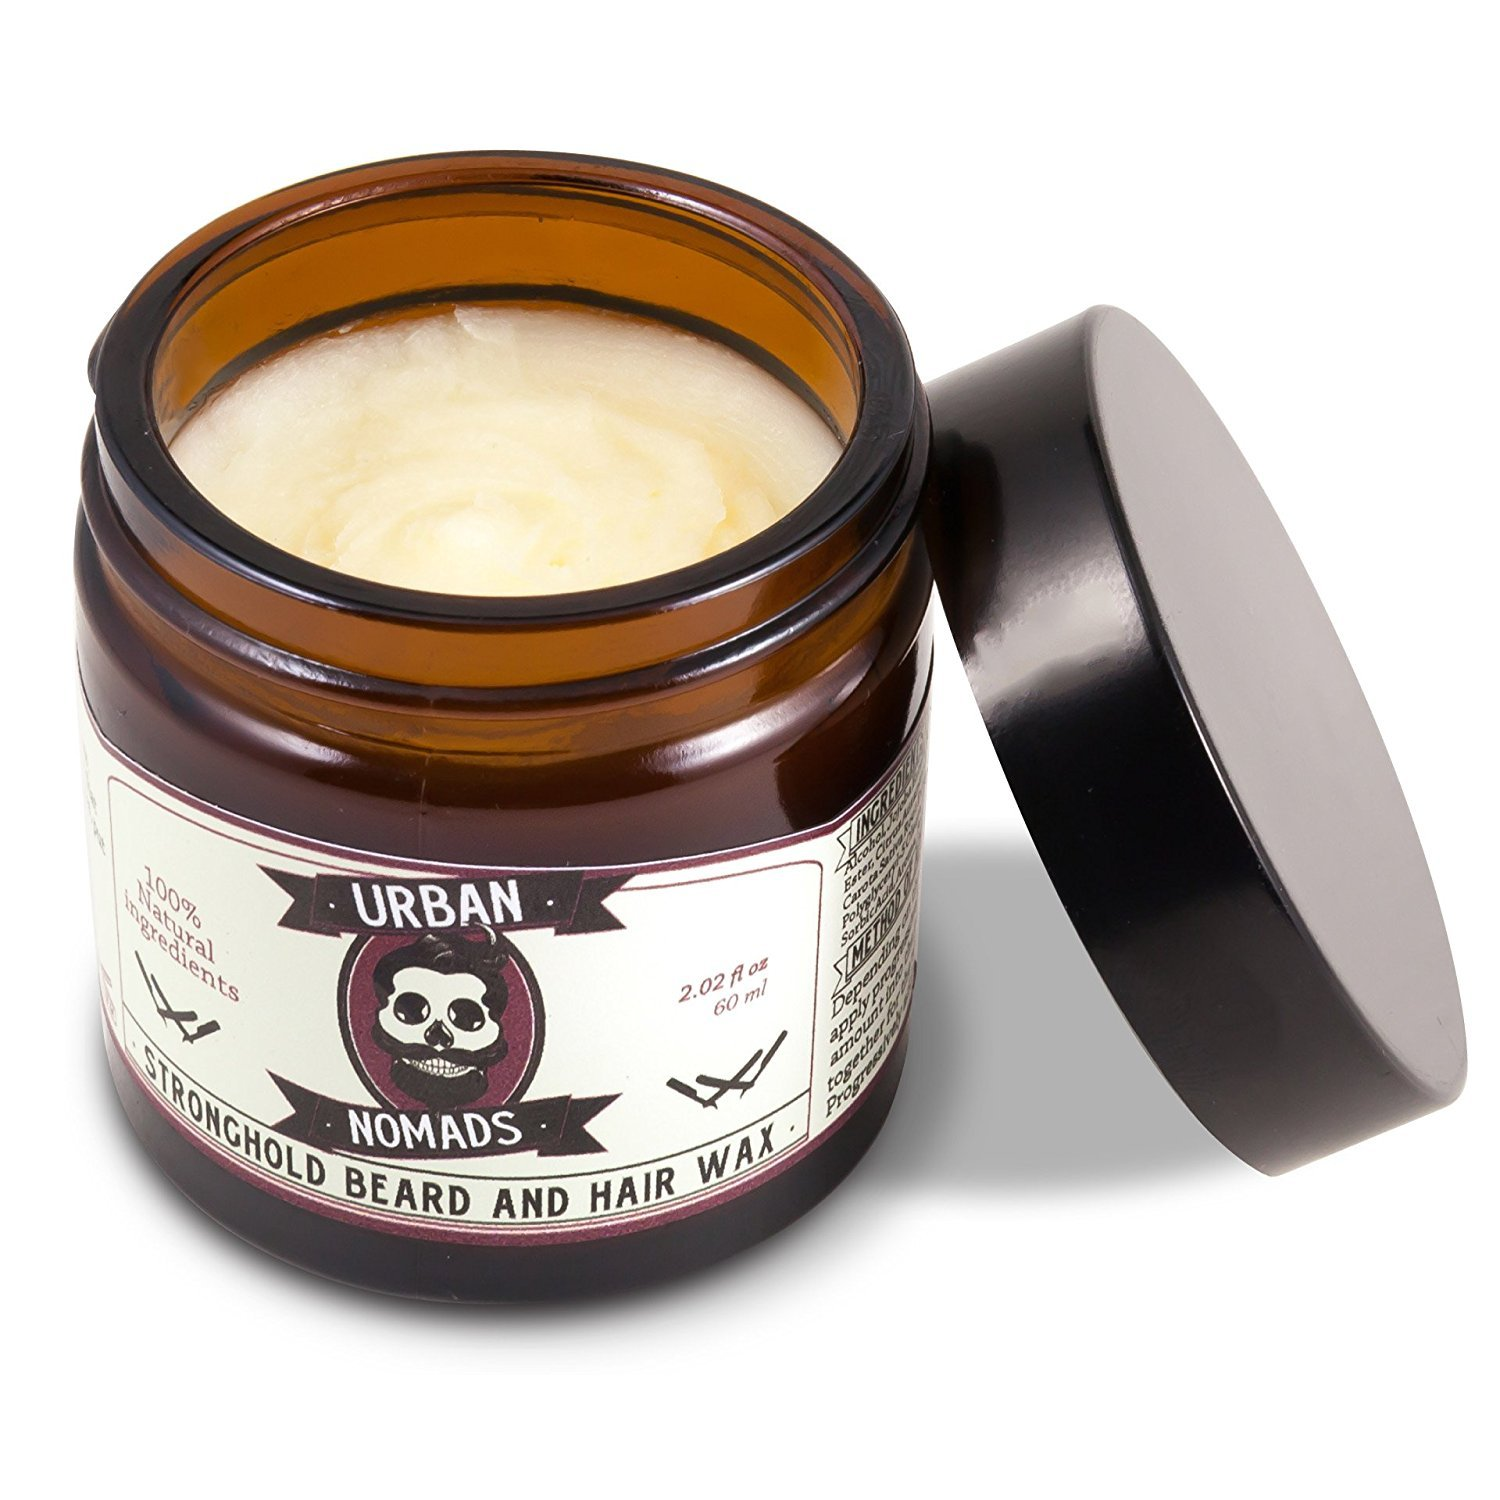 Best Beard Balm & Wax   Strong Hold   Leave in Conditioner & Styling Balm for All Beard Styles, Mustache, Hair   Carotenes, Sesame Seed Oils, Bergamot and Citric Fruit Oils   Made in Barcelona   2 oz